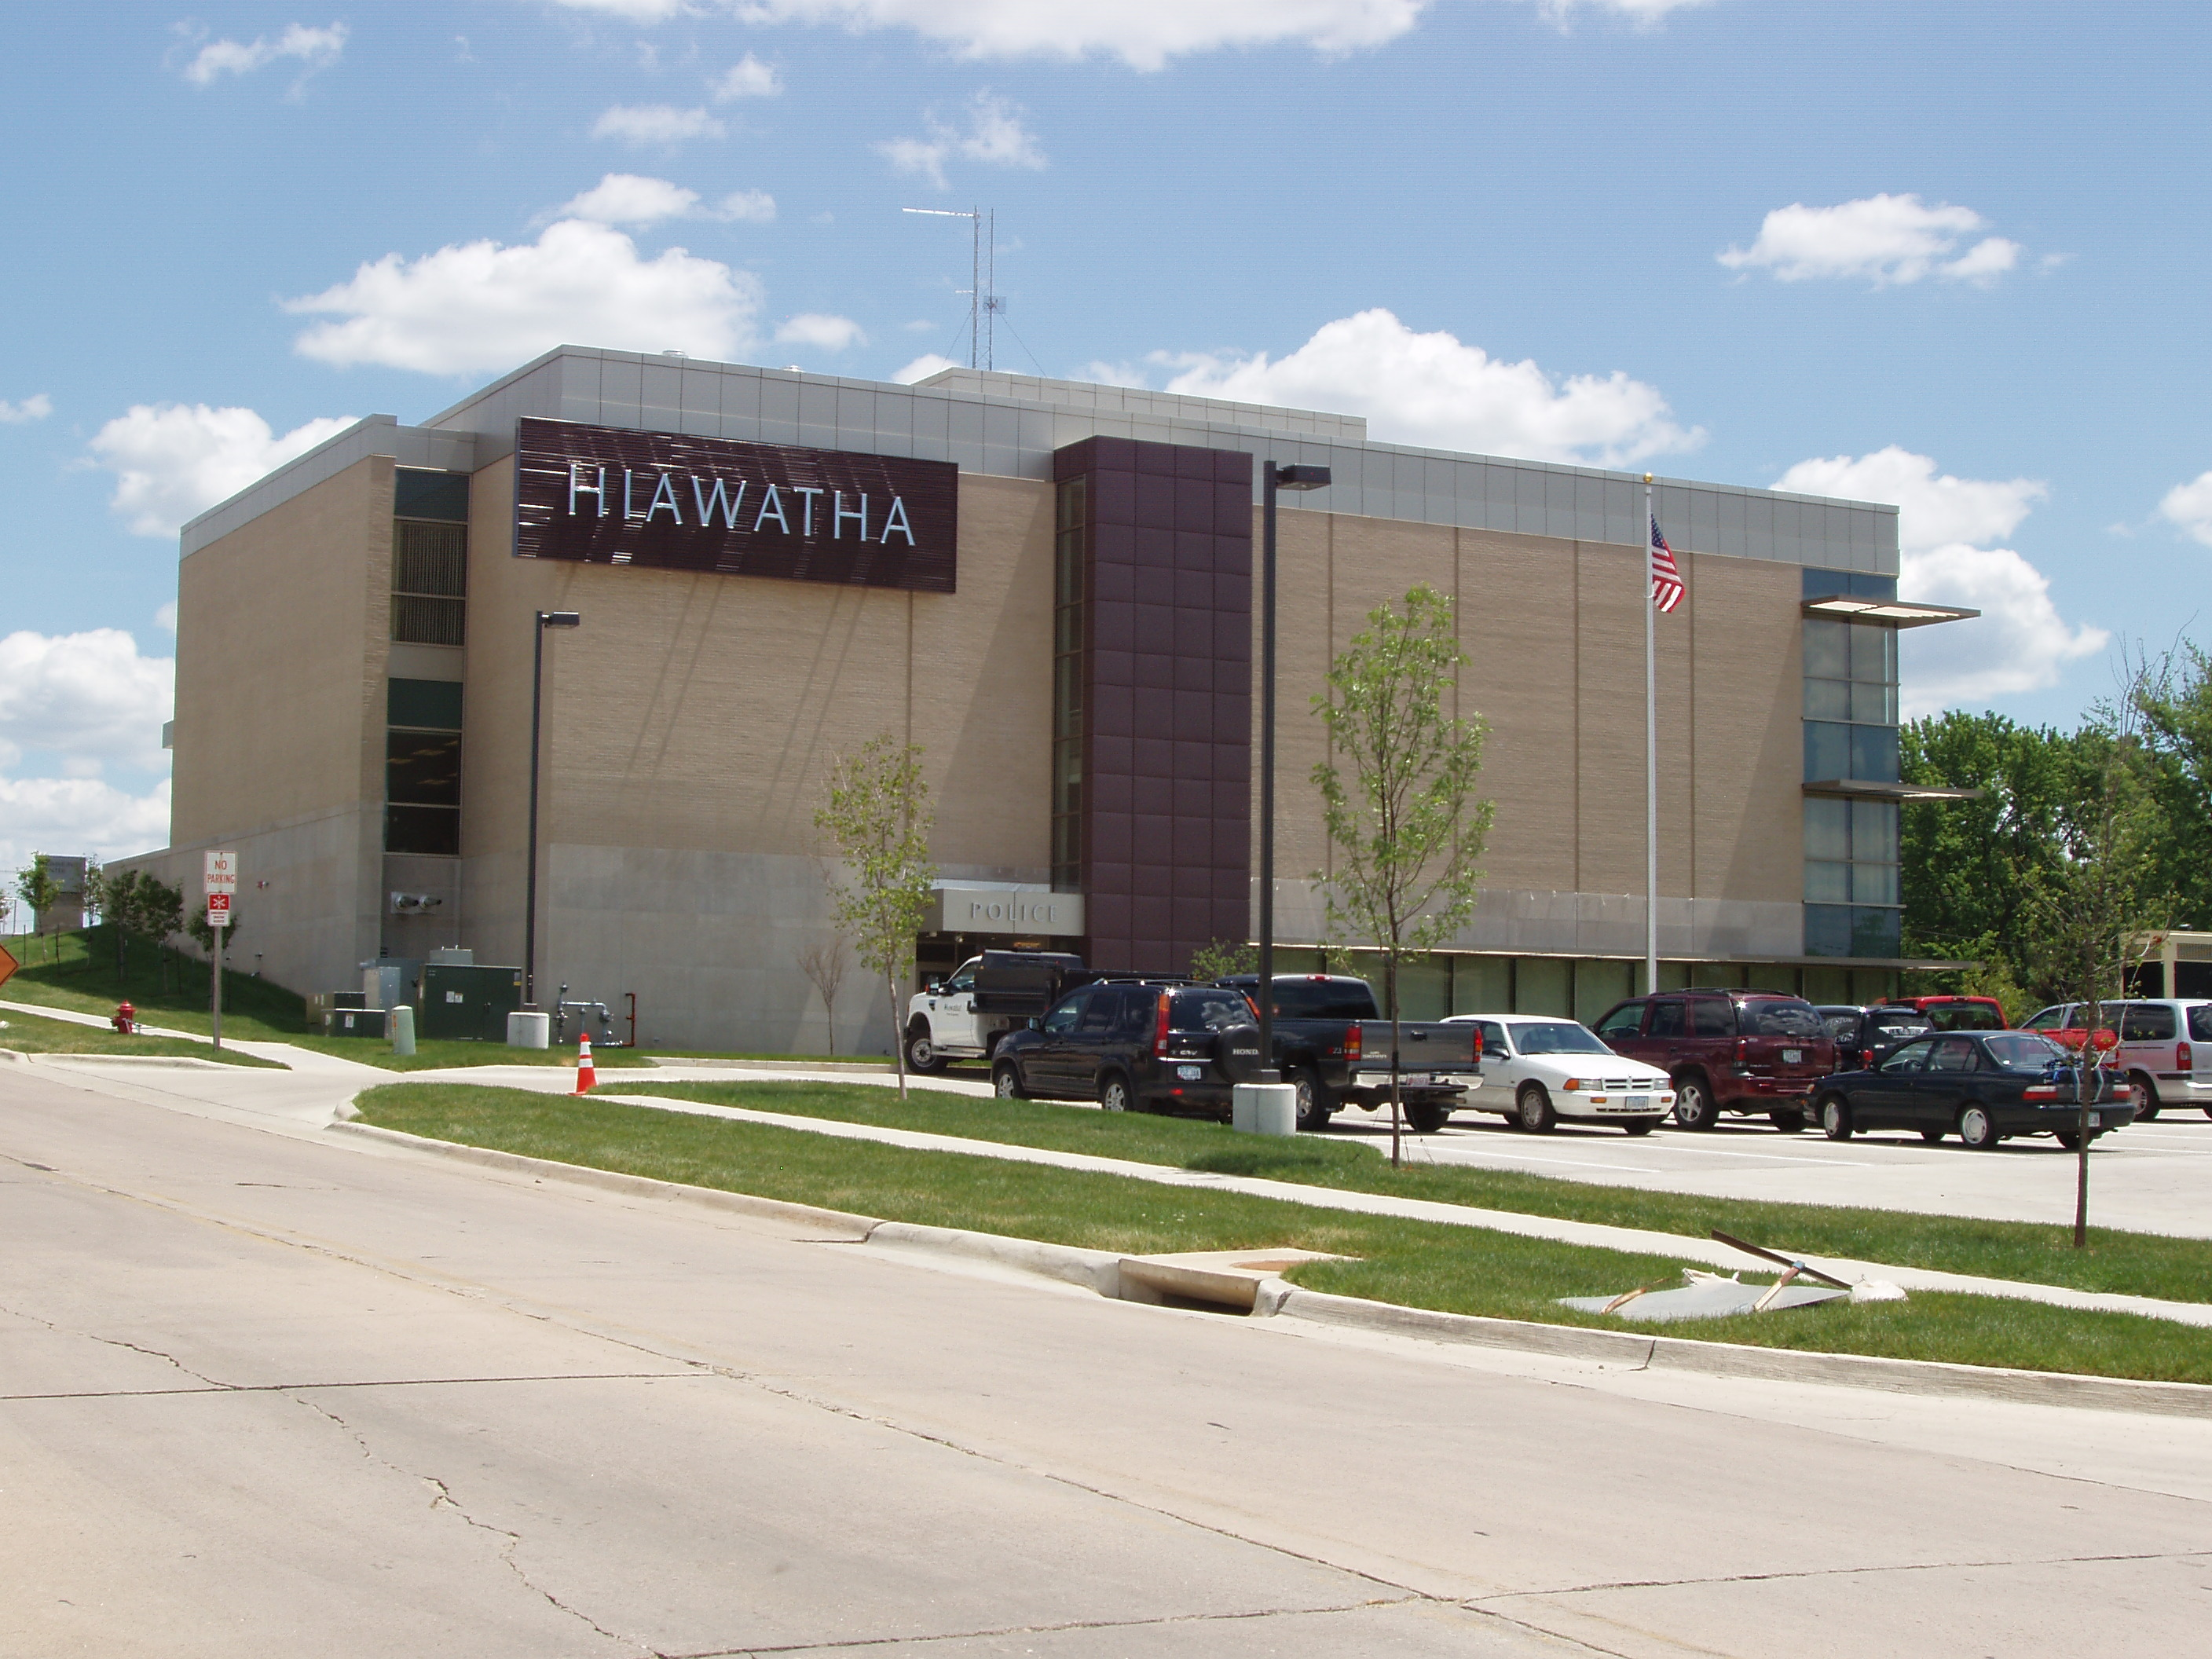 Hiawatha City Hall (Hiawatha)